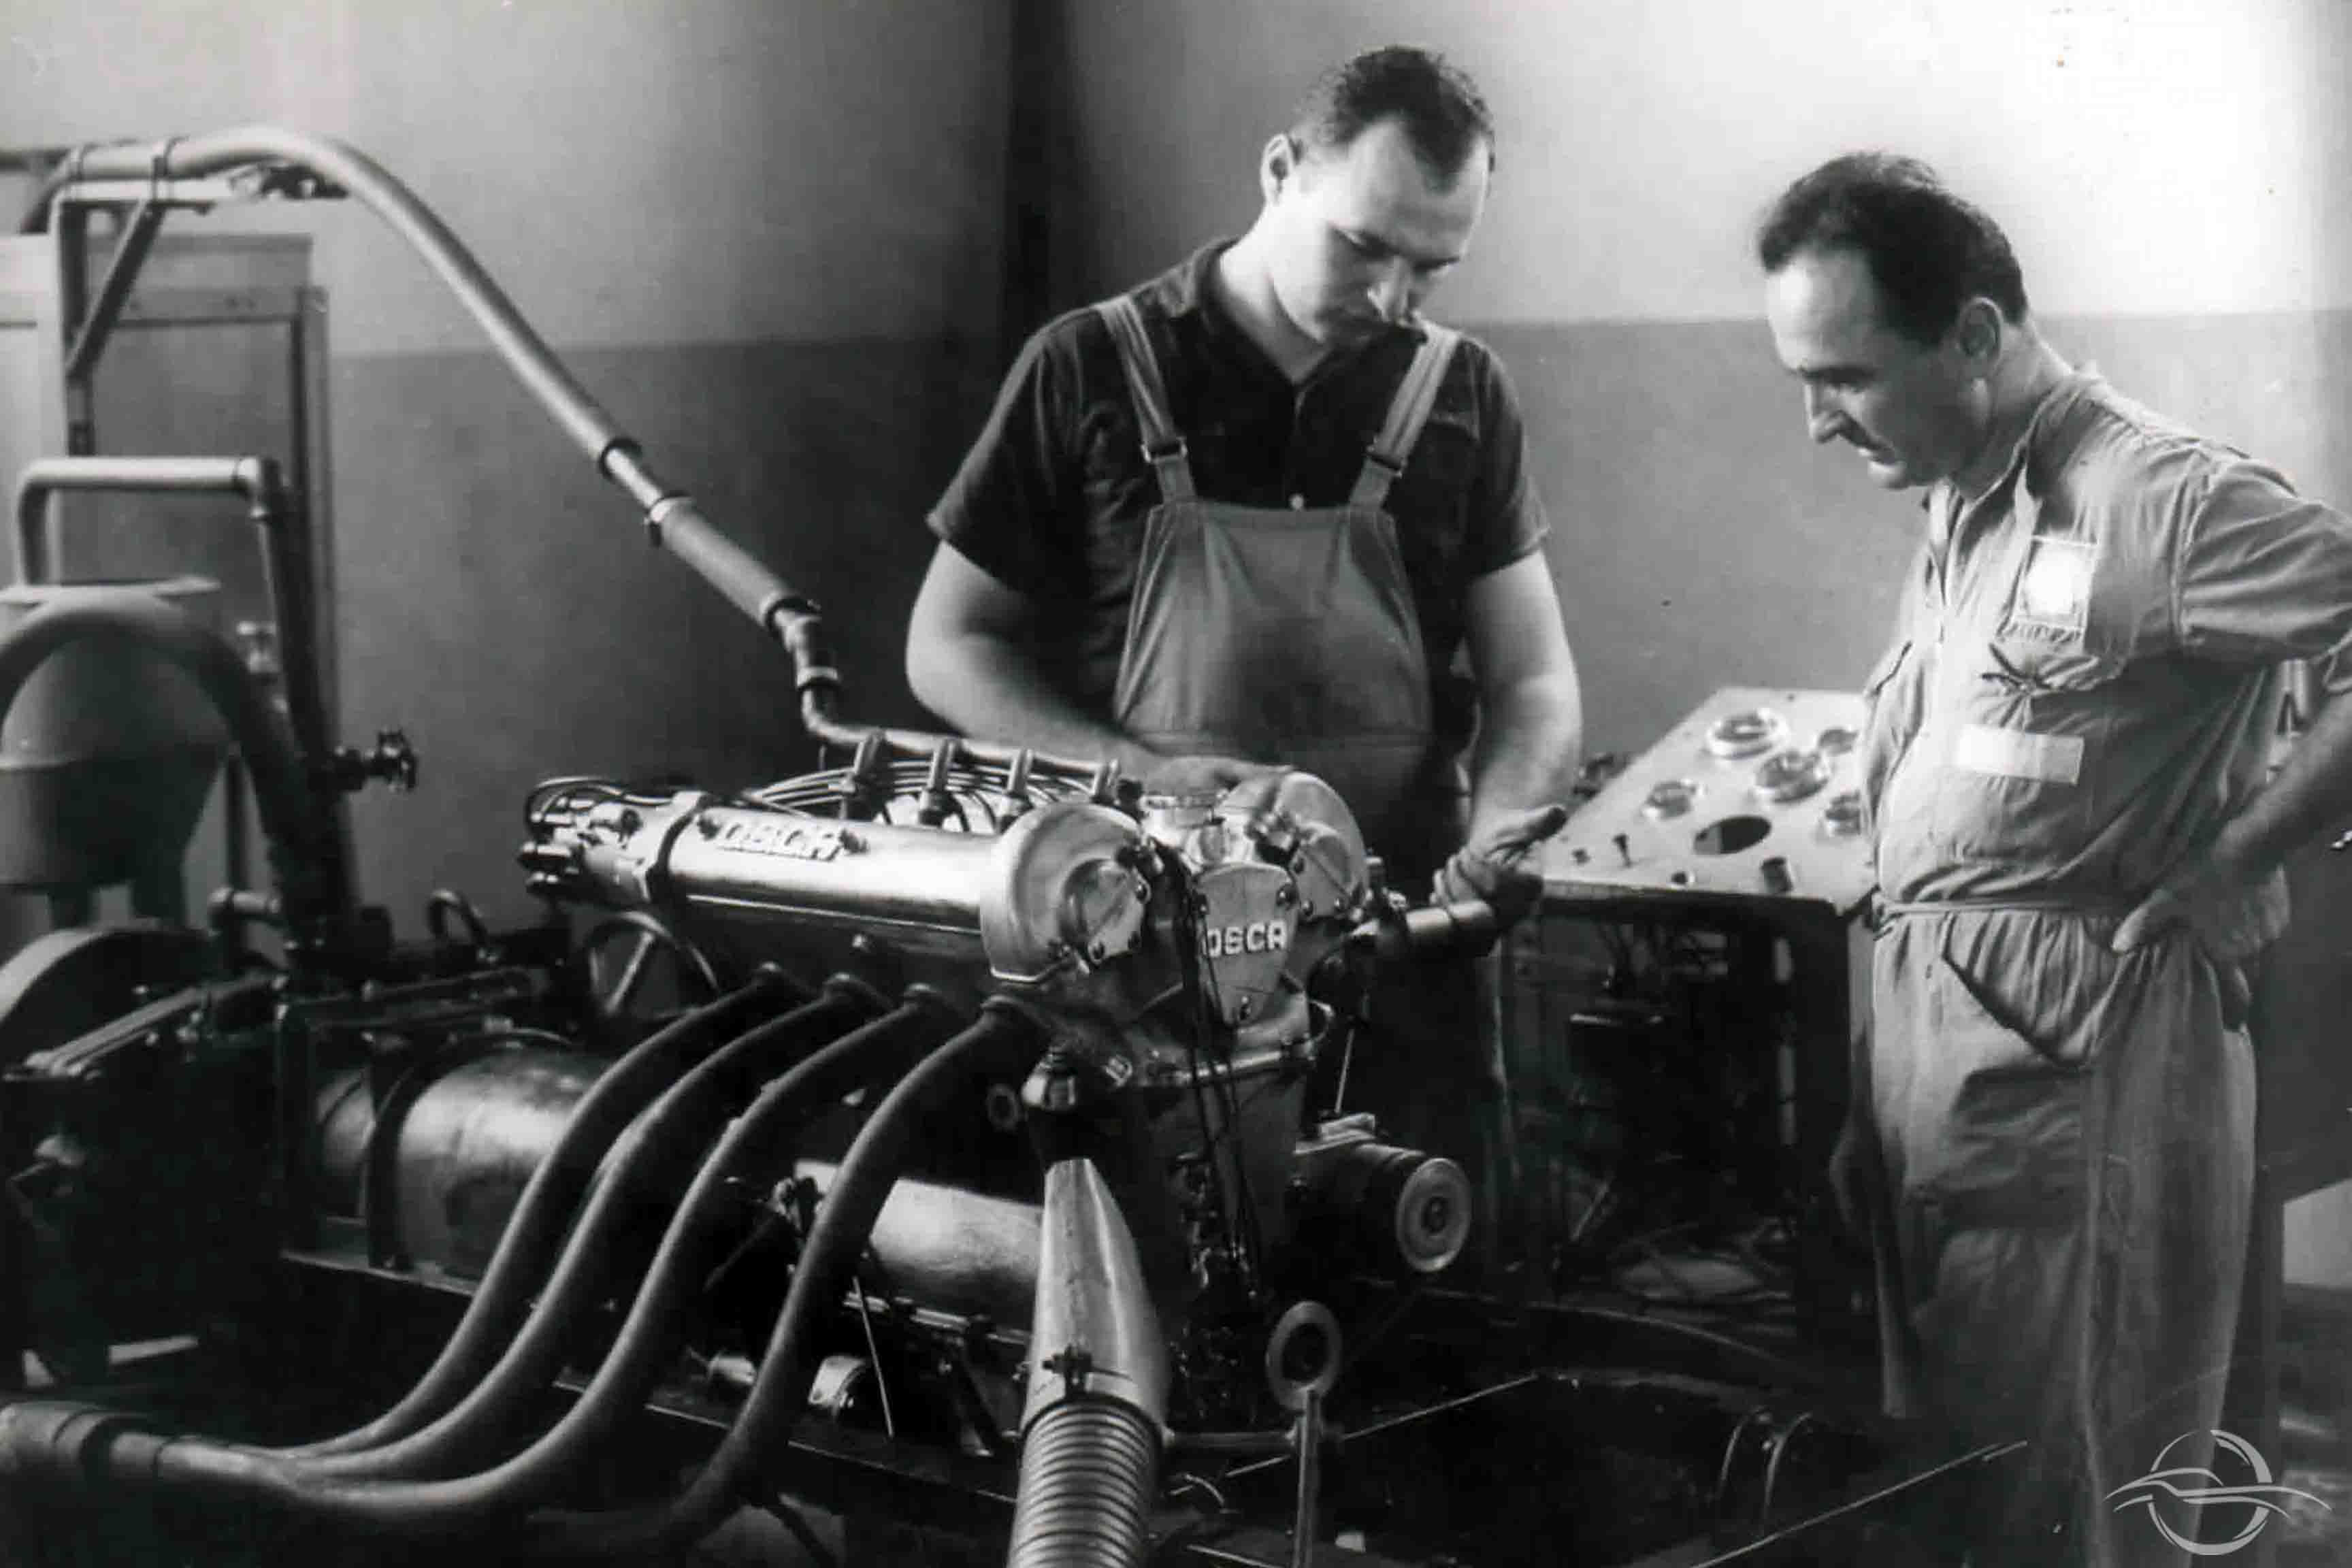 Luciano Rizzoli and Engineer Stanzani - San Lazzaro di Savena 1960